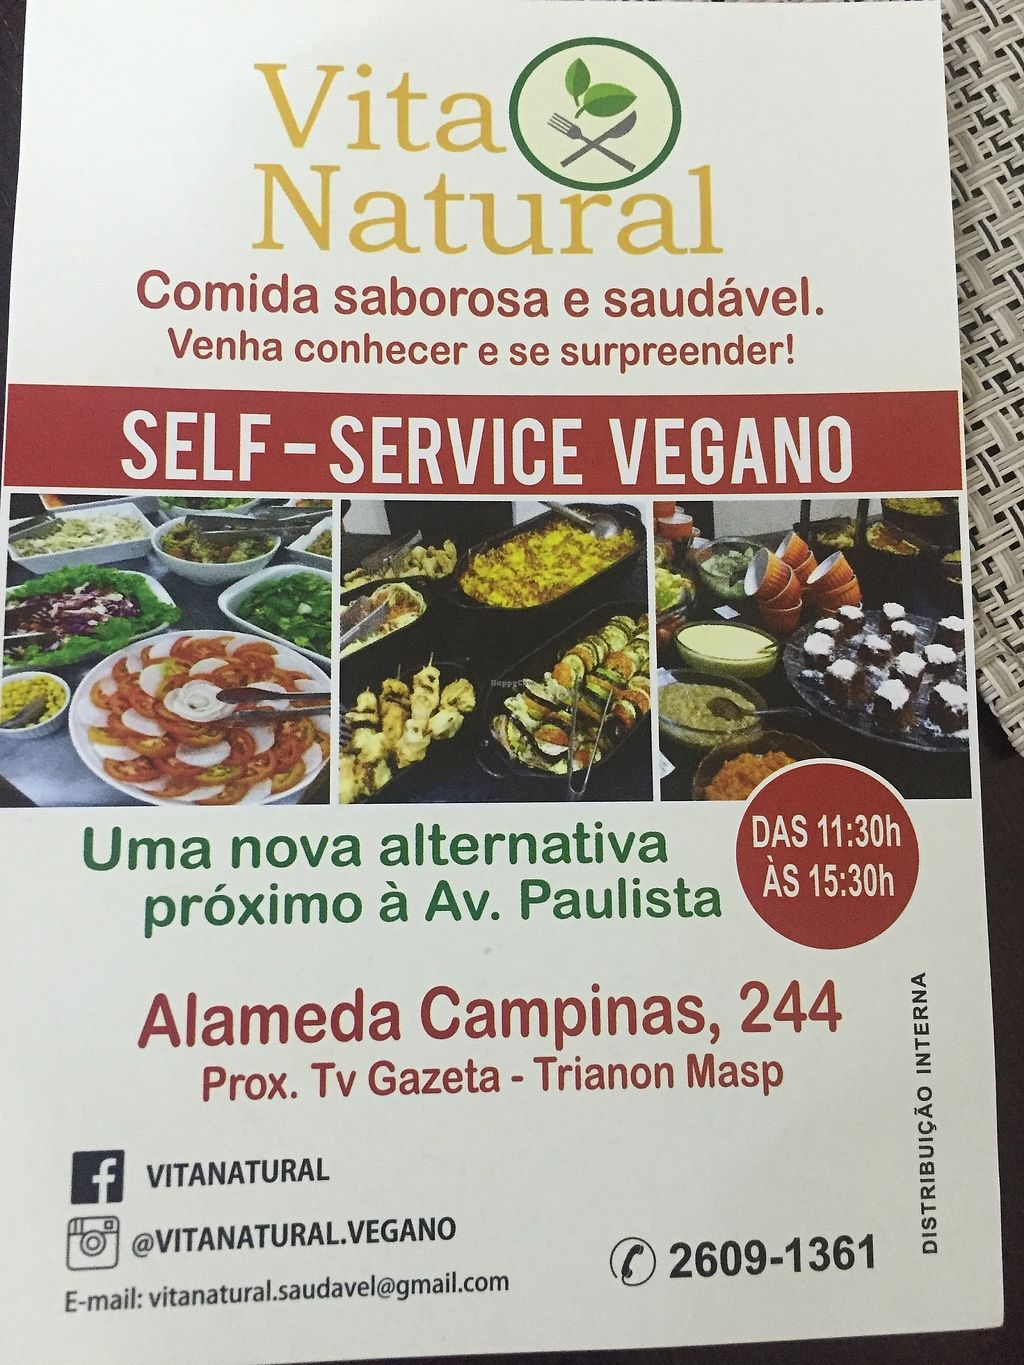 "Photo of Vita Natural  by <a href=""/members/profile/Vegeiko"">Vegeiko</a> <br/>Try to find this signboard on the street <br/> November 29, 2017  - <a href='/contact/abuse/image/96554/330596'>Report</a>"